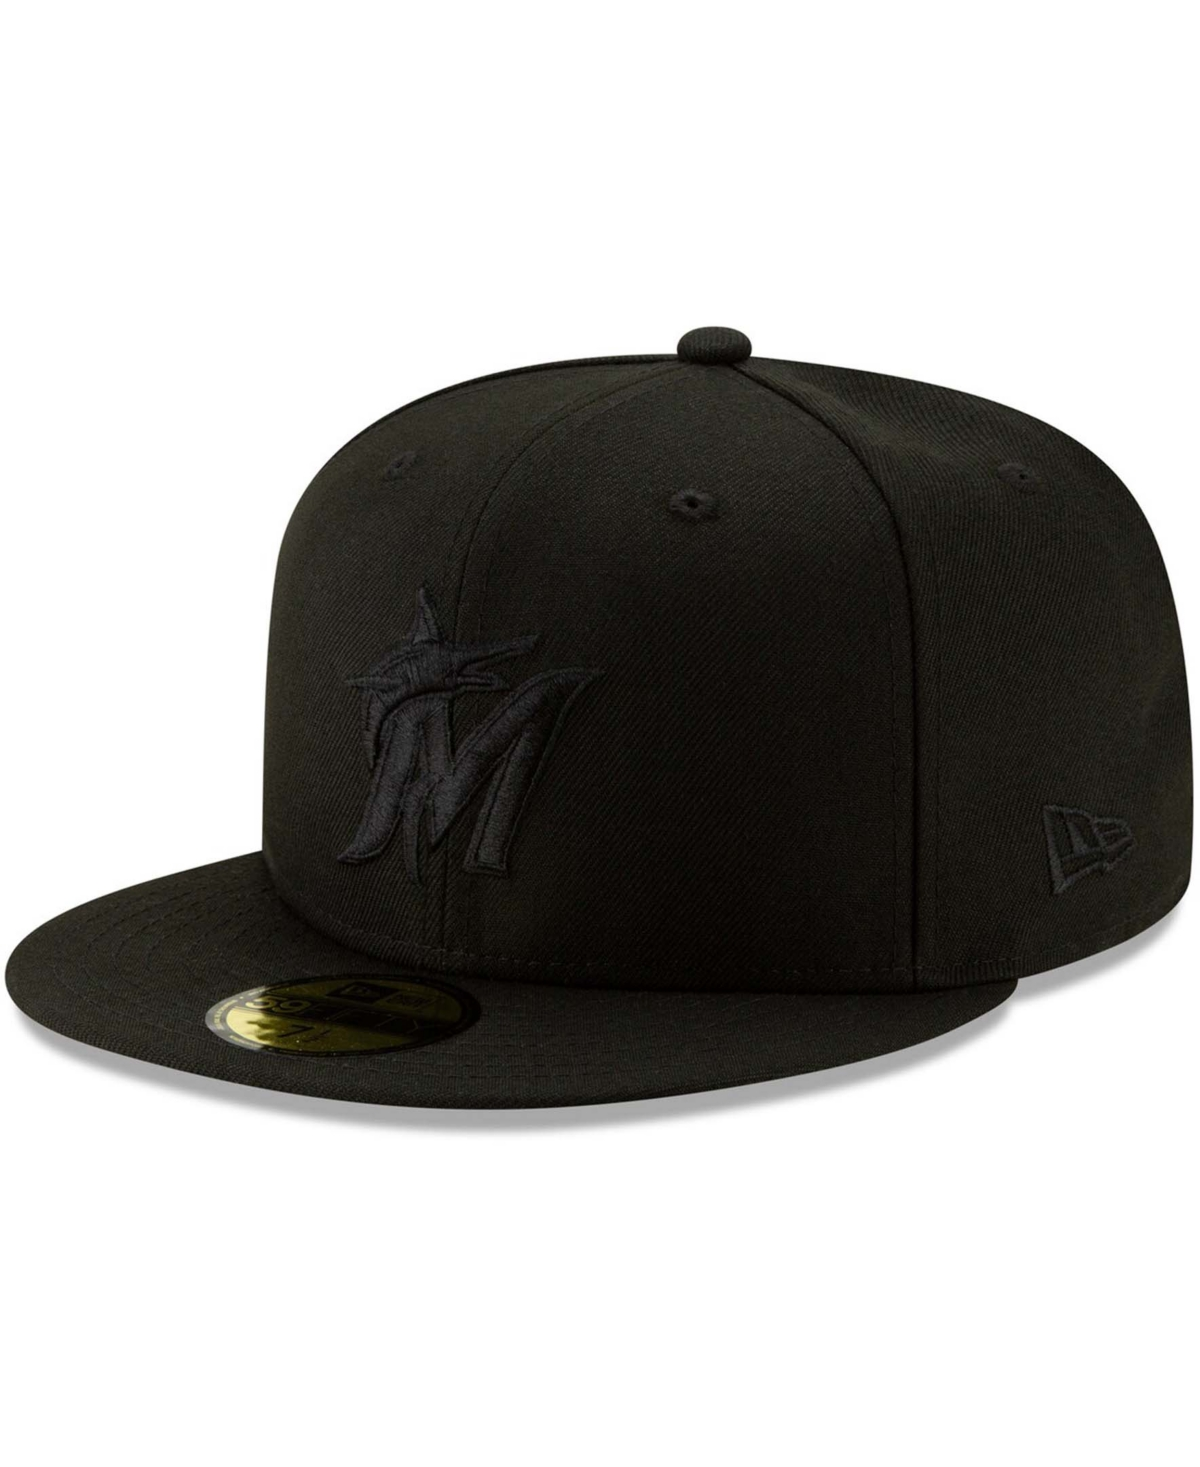 Men's Black Miami Marlins 2019 Black-on-Black 59FIFTY Fitted Hat